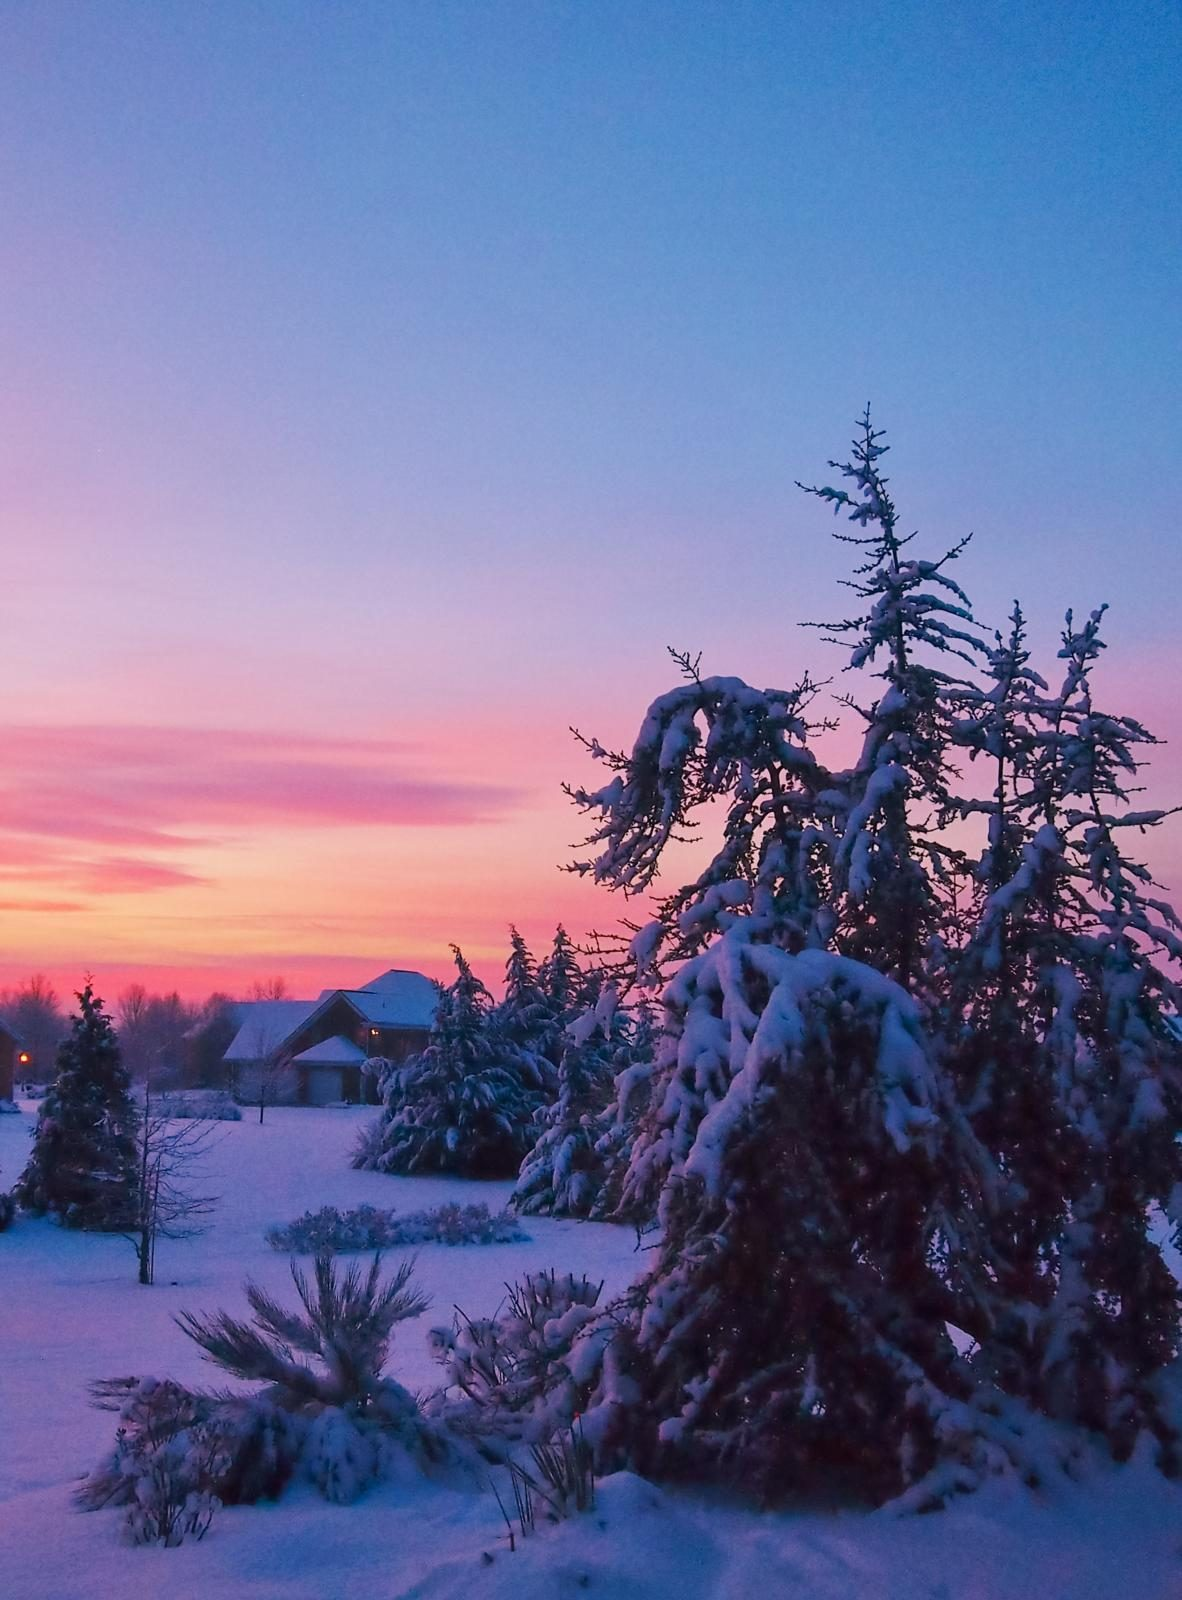 Dawn with snow-covered trees and a house.